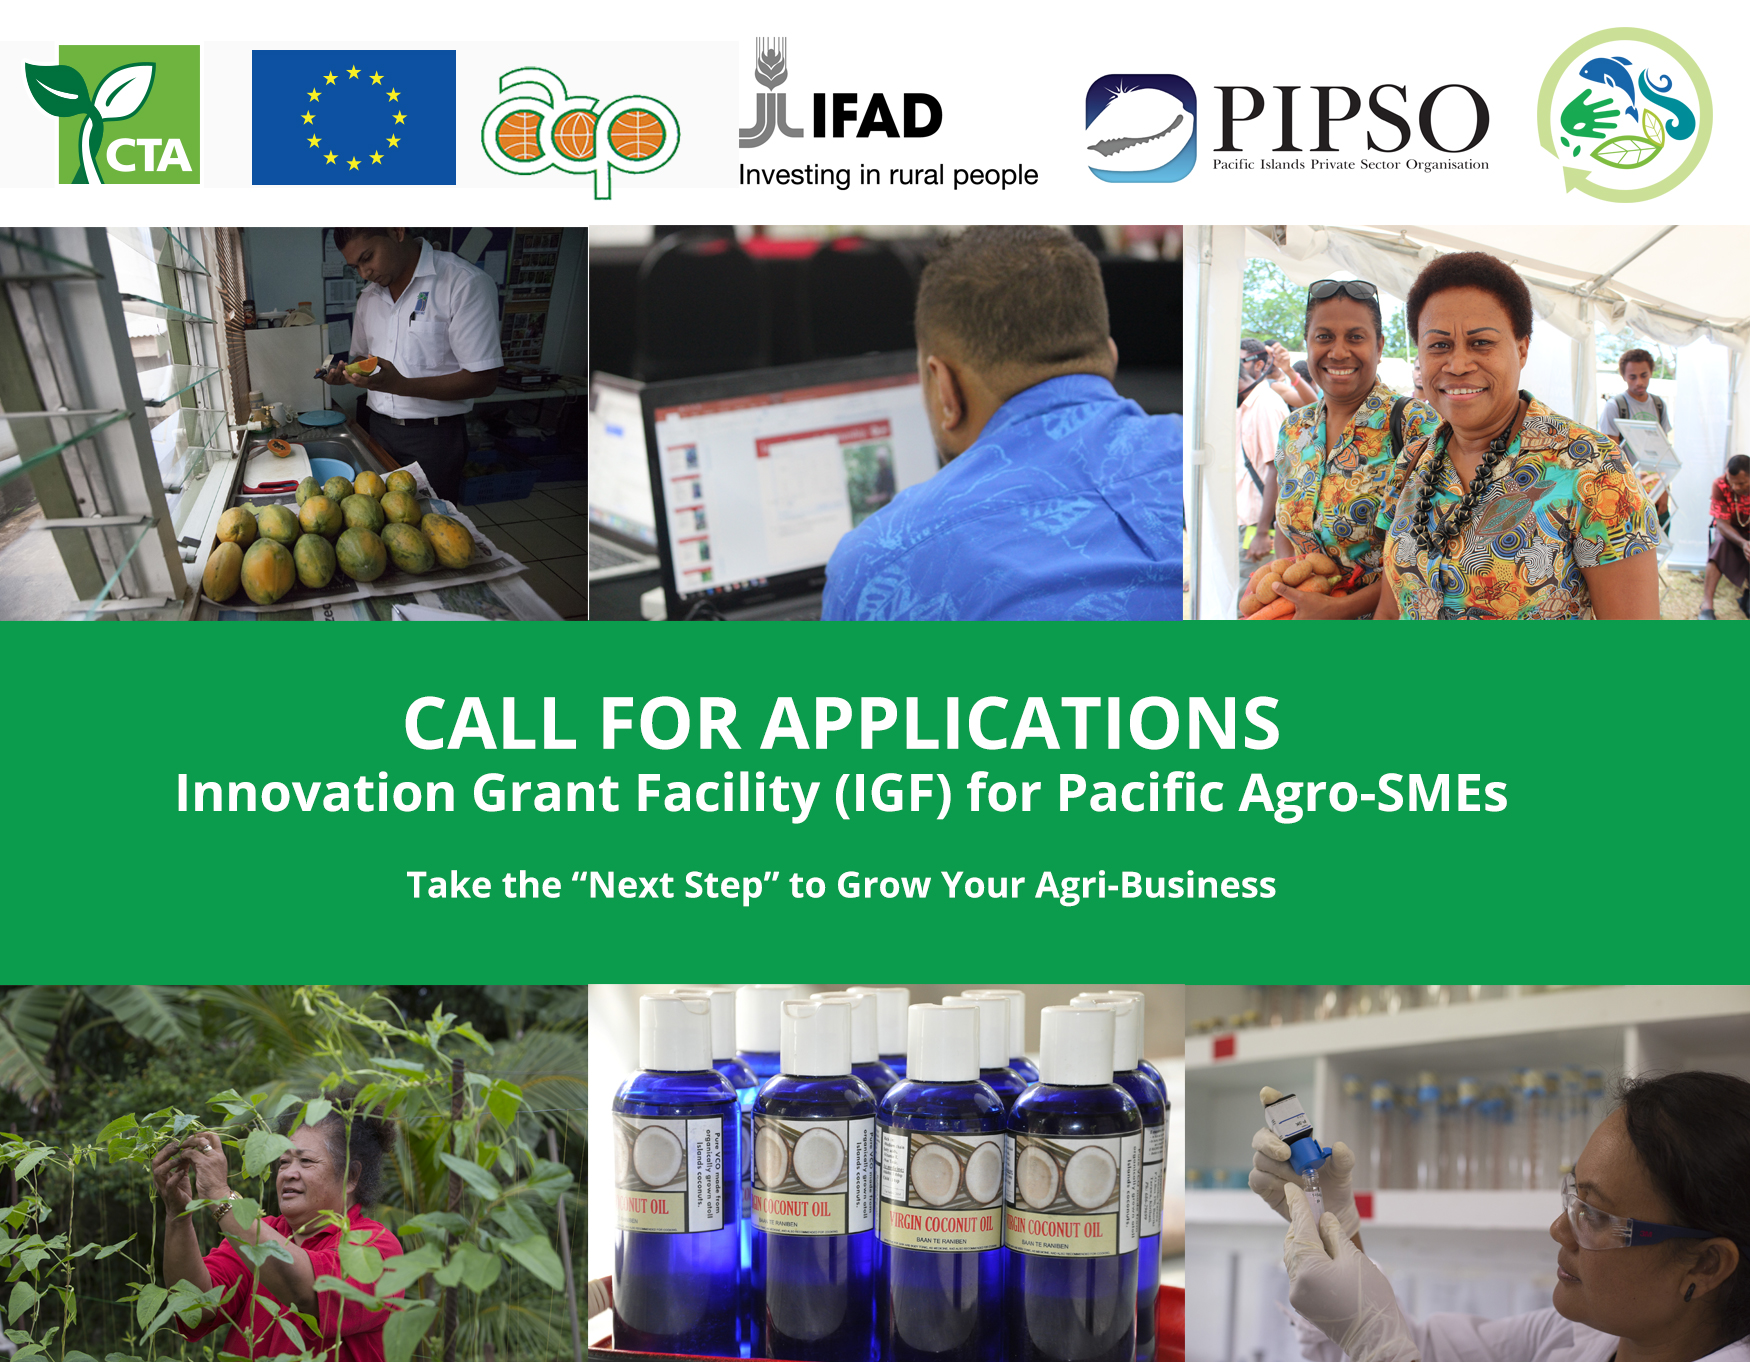 Opportunity for Pacific Agro-SMEs to Grow their Business: Innovation Grant Facility (IGF)